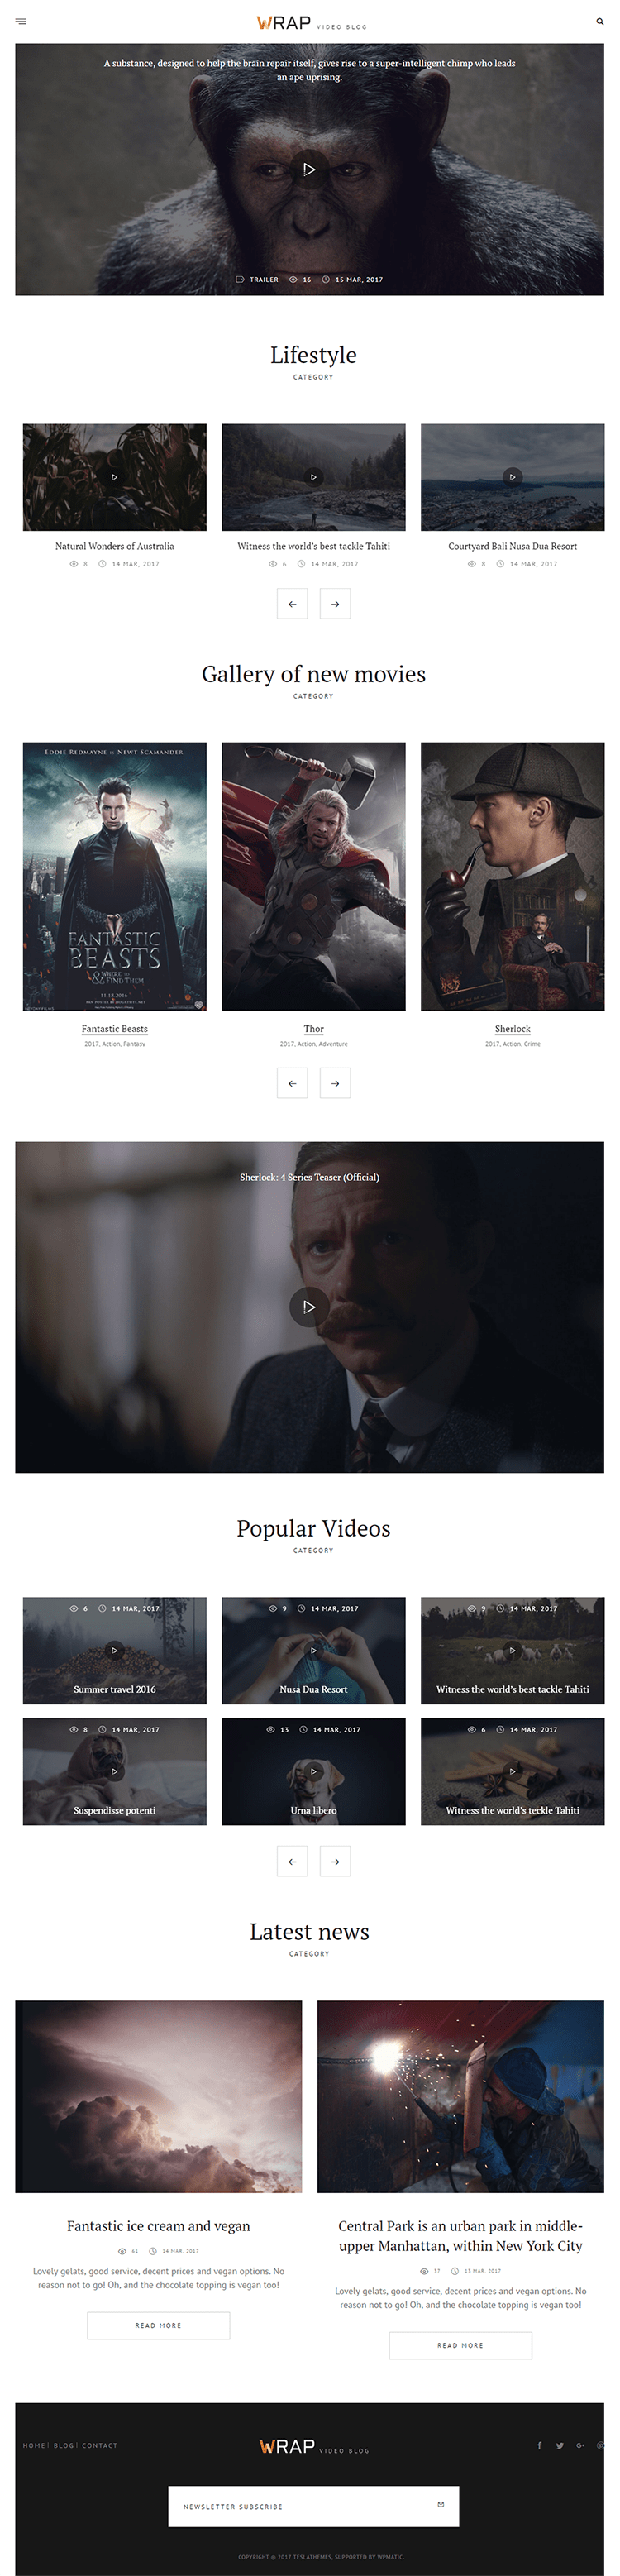 Wrap WordPress Theme for Video Blog